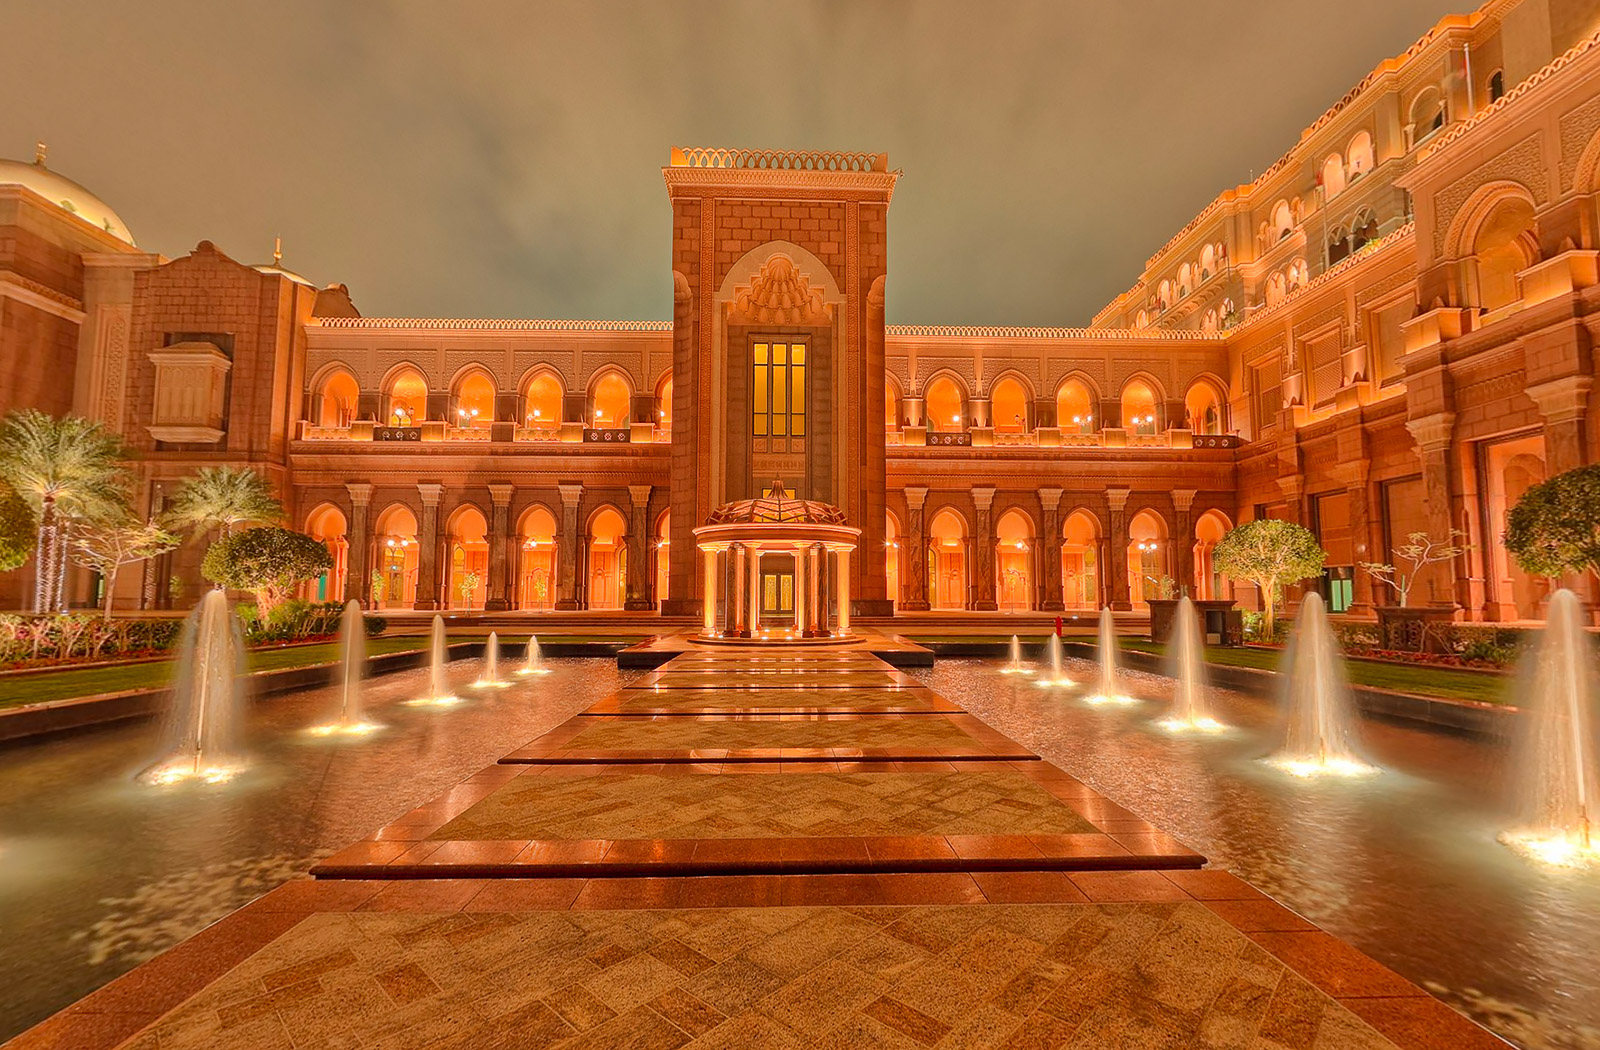 Emirates palace hotel abu dhabi uae hotel virtual tours for Home wallpaper uae